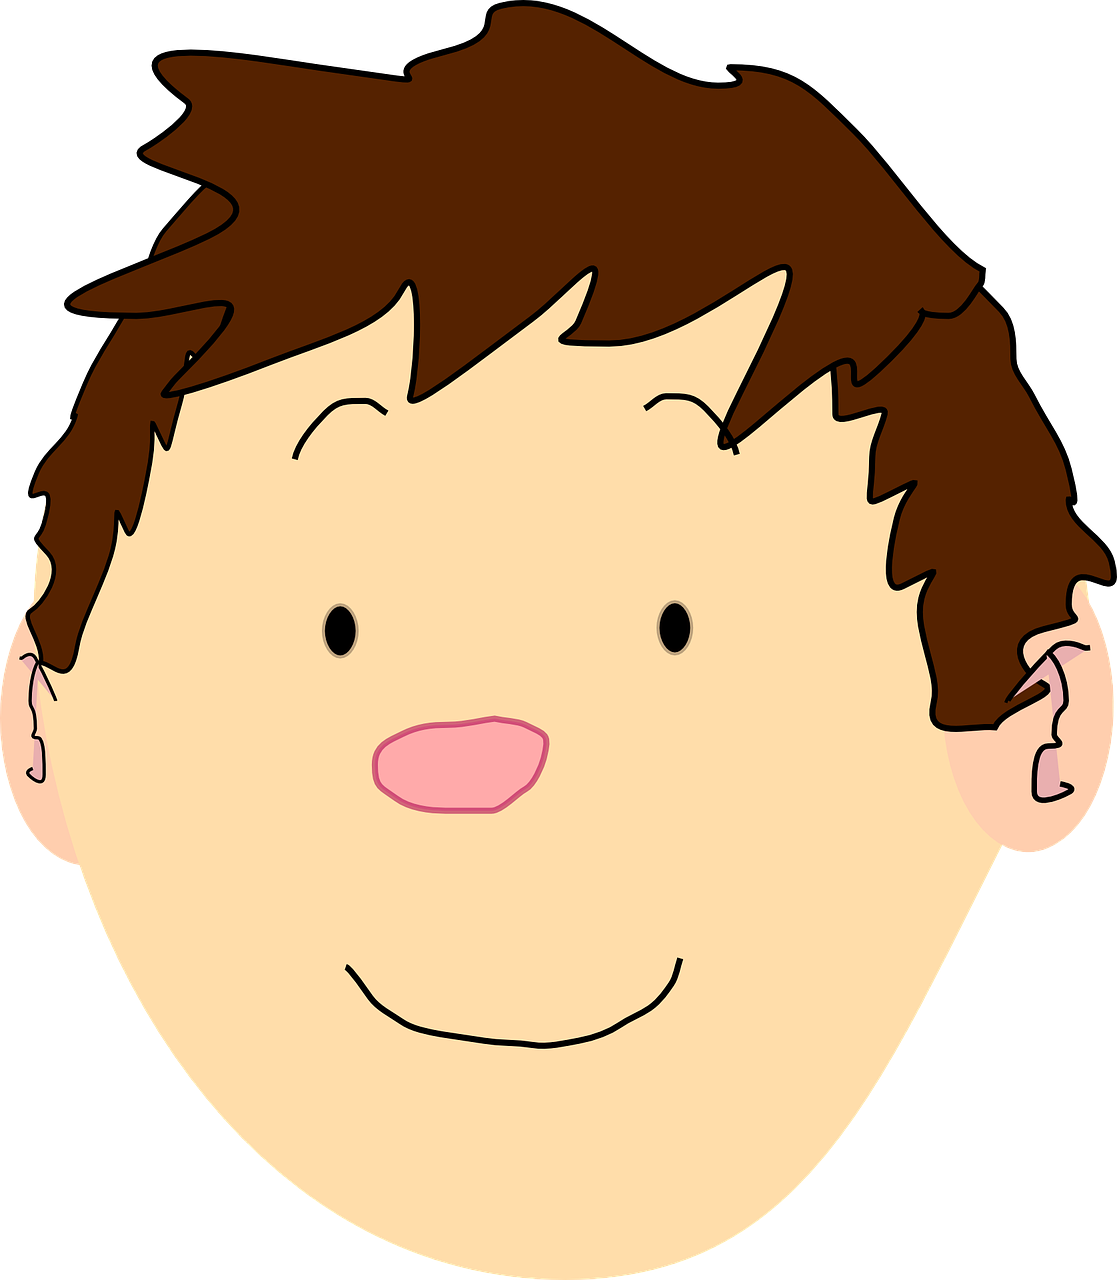 Boy Face Head Free Vector Graphic On Pixabay